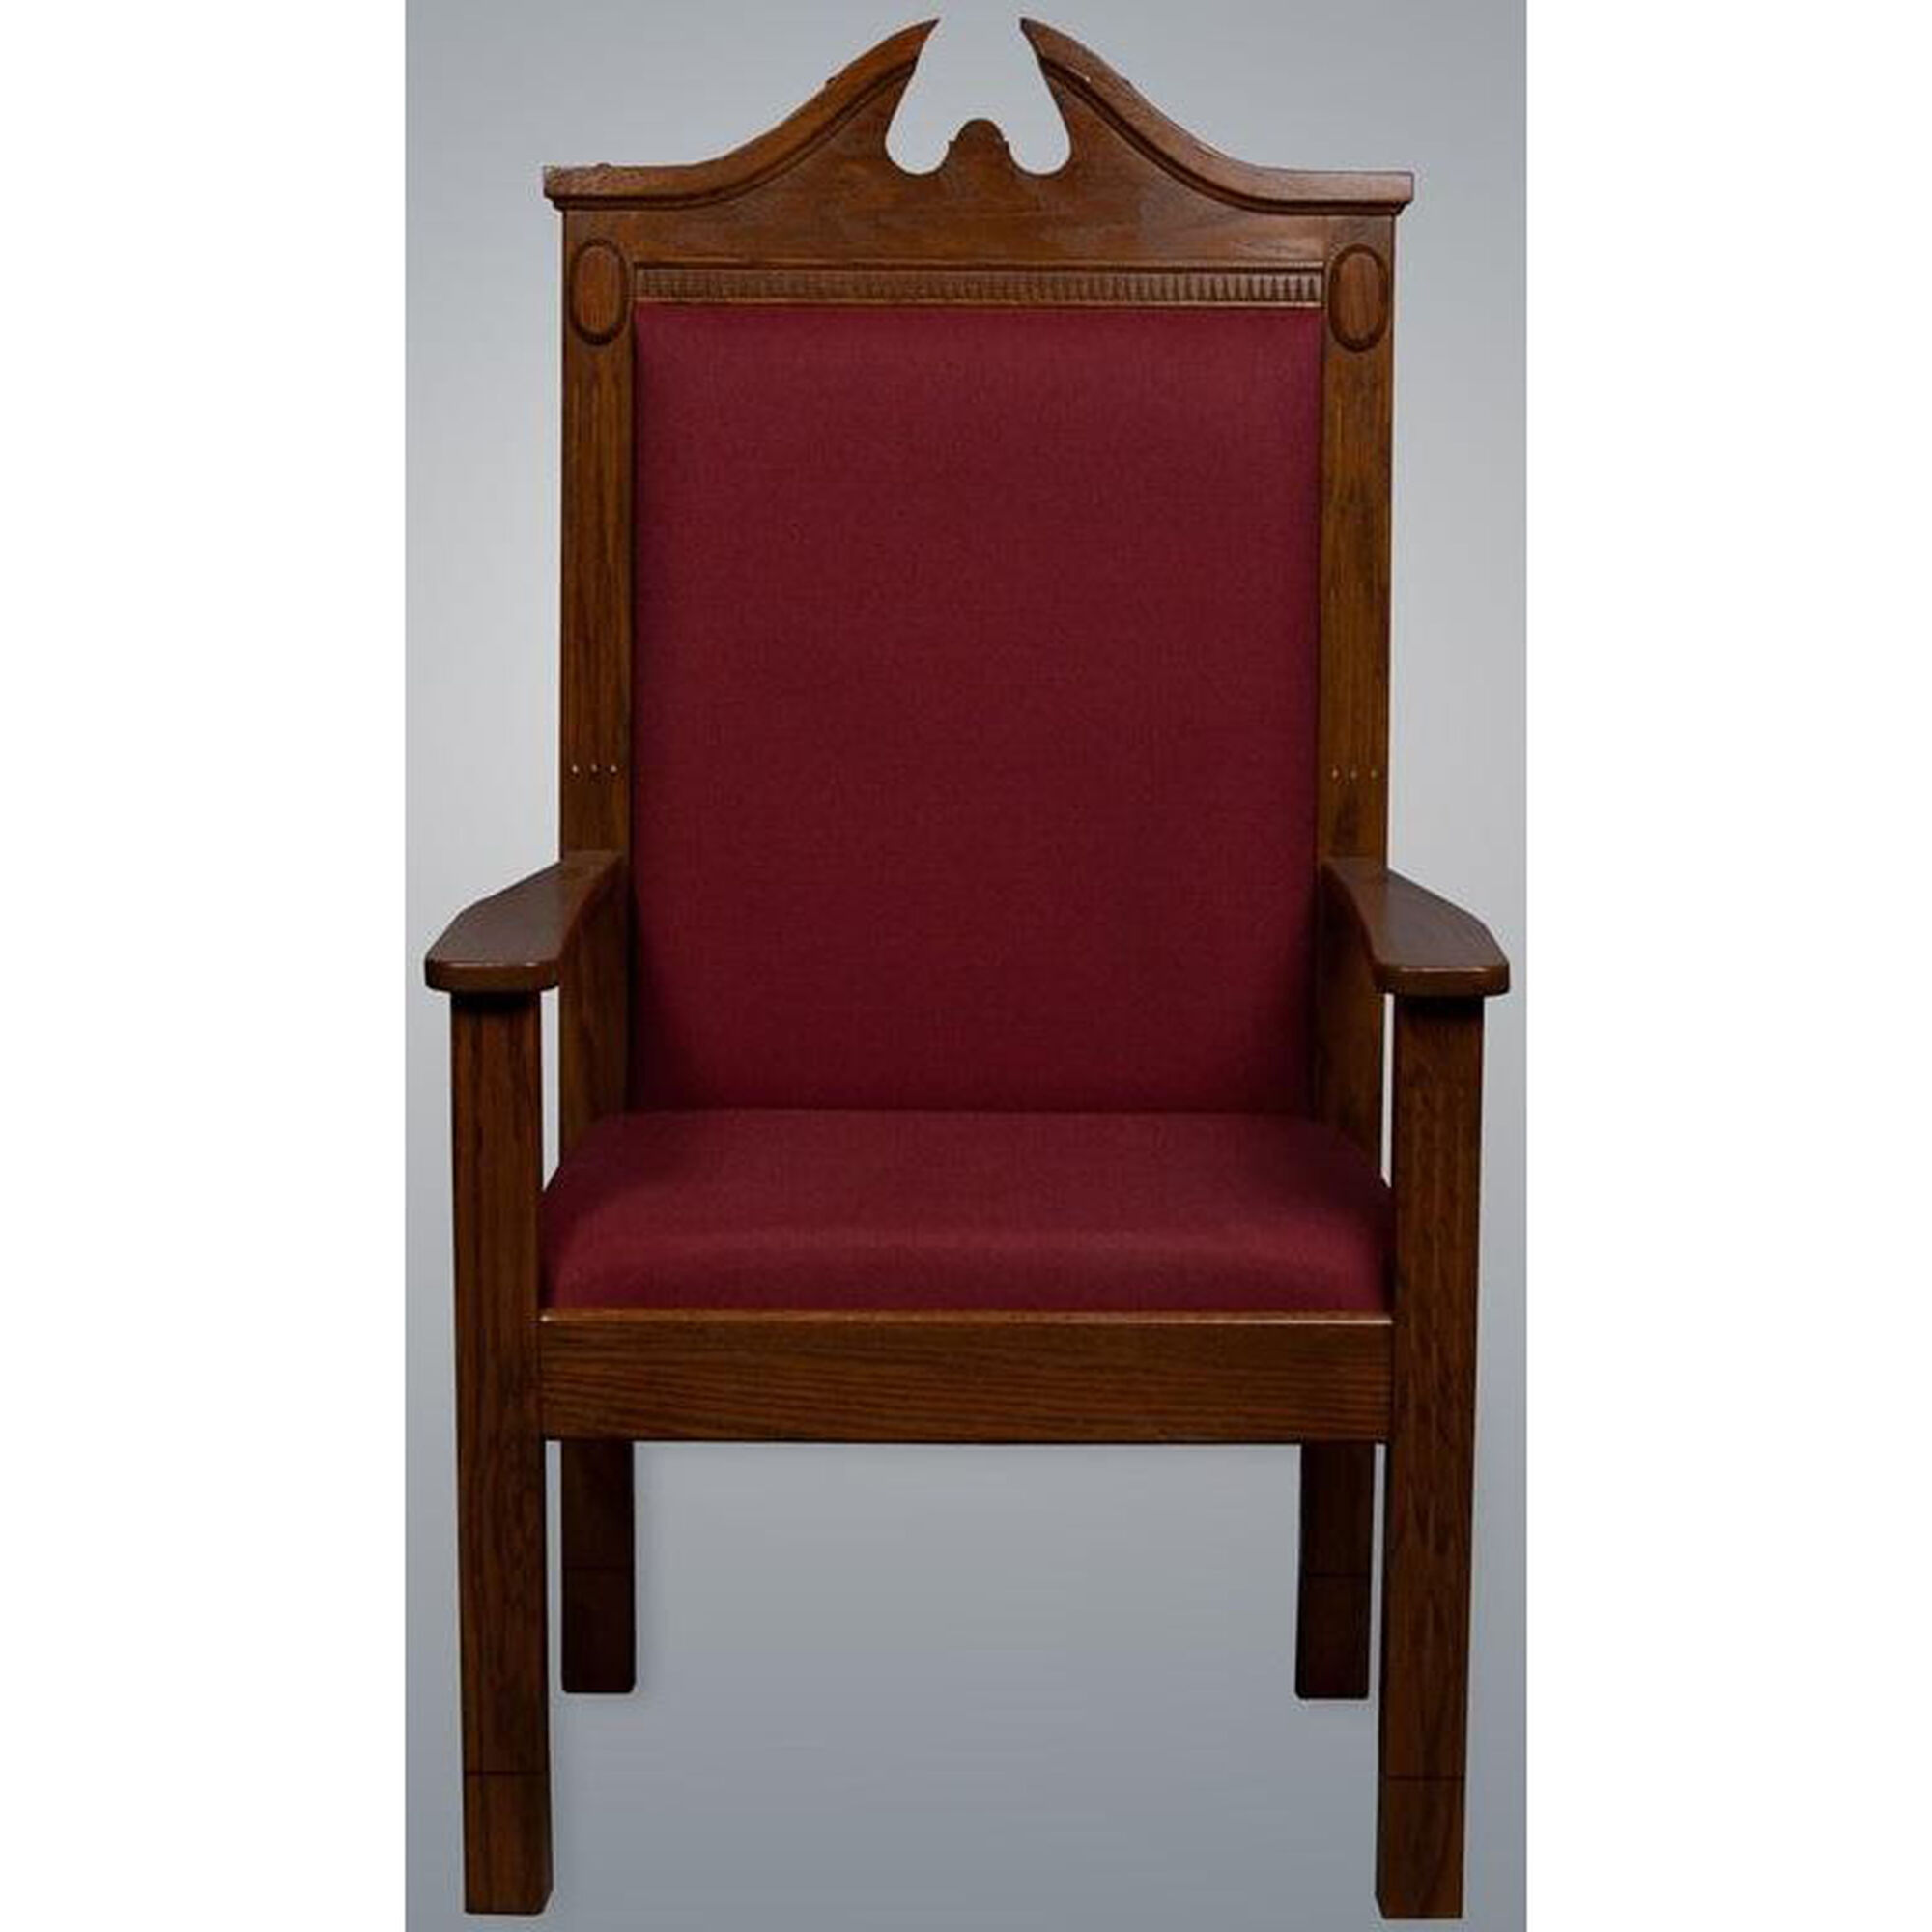 In order to assure the best possible color match it is recommended to request a wood fabric sample before ordering